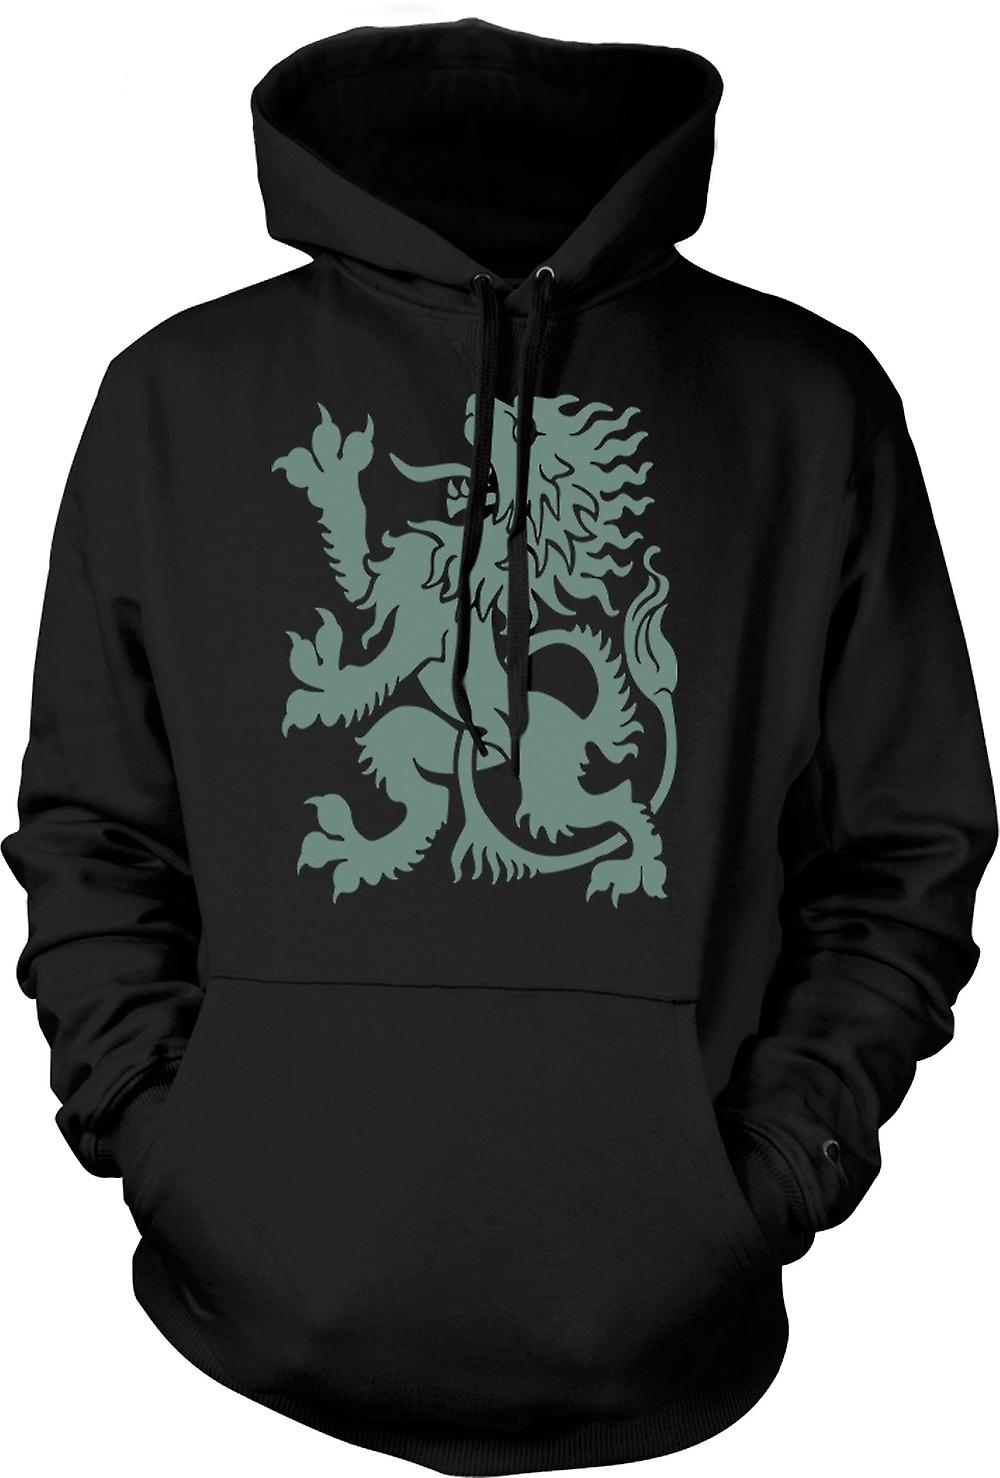 Mens Hoodie - Dragon gallois - Heraldy - Cool